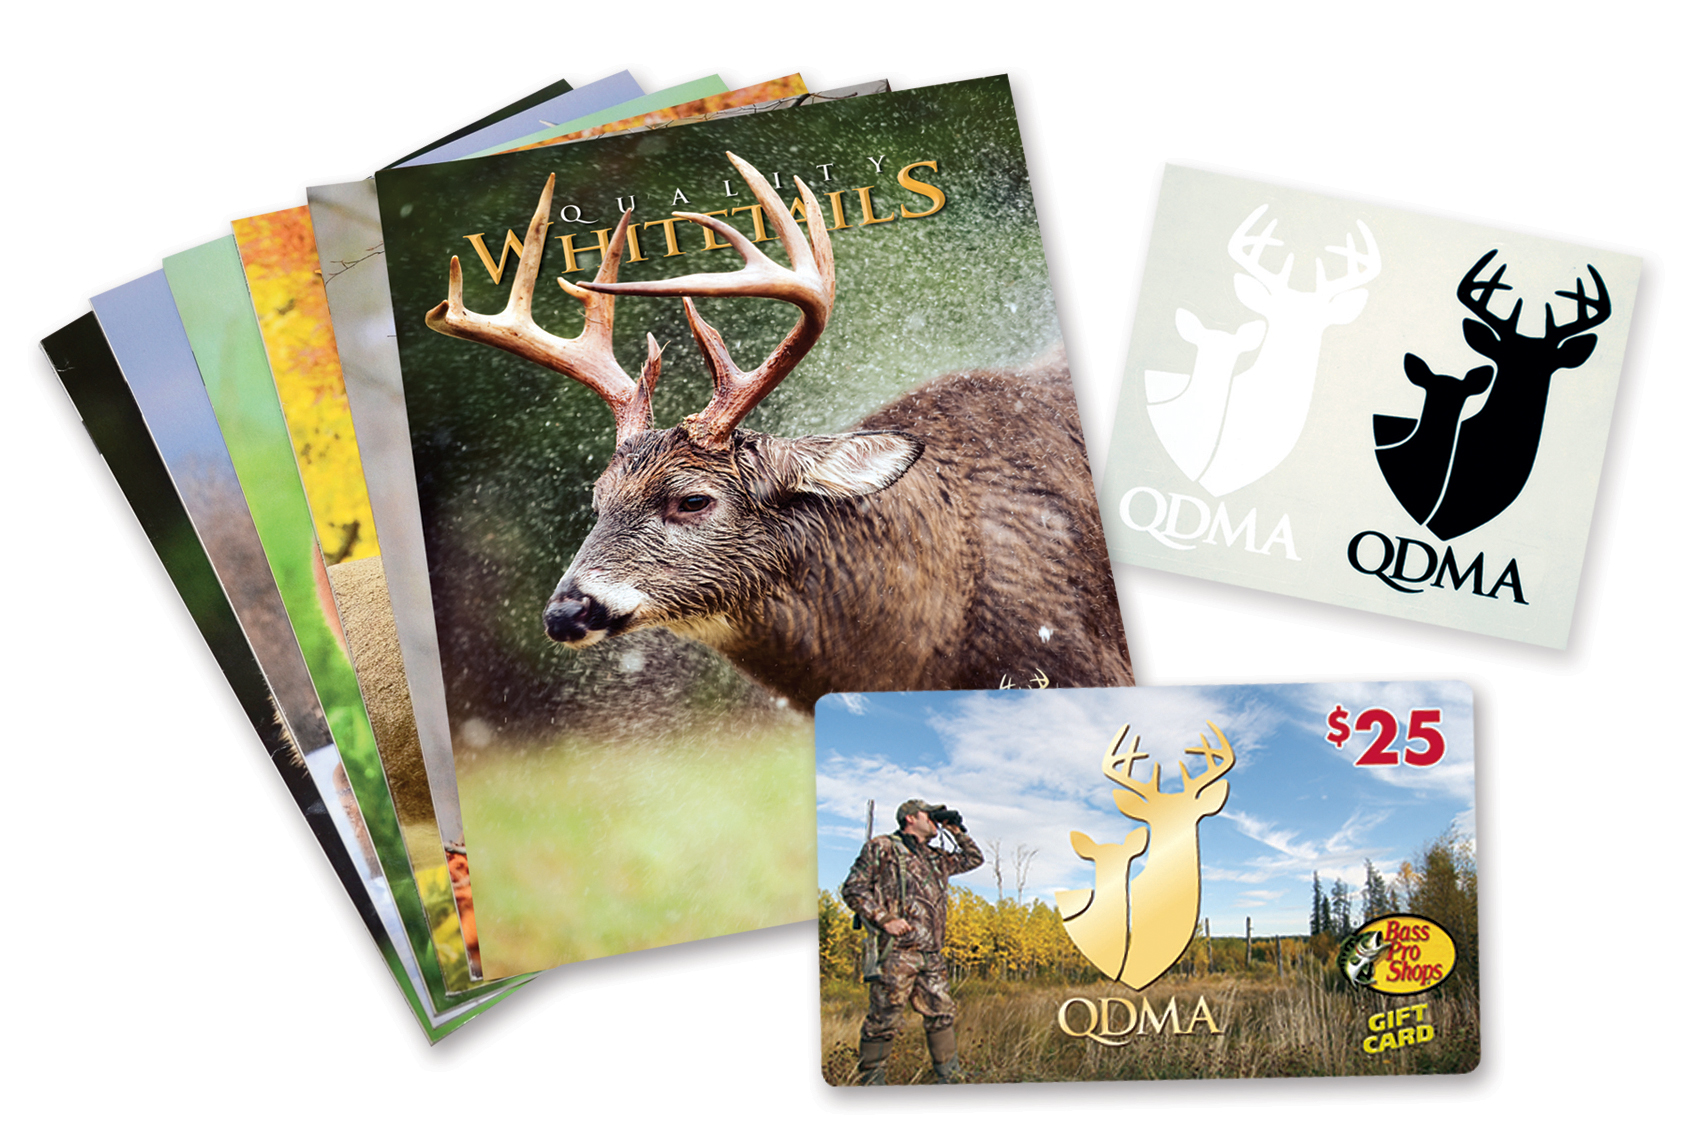 QDMA 3 Year Renew Gifts